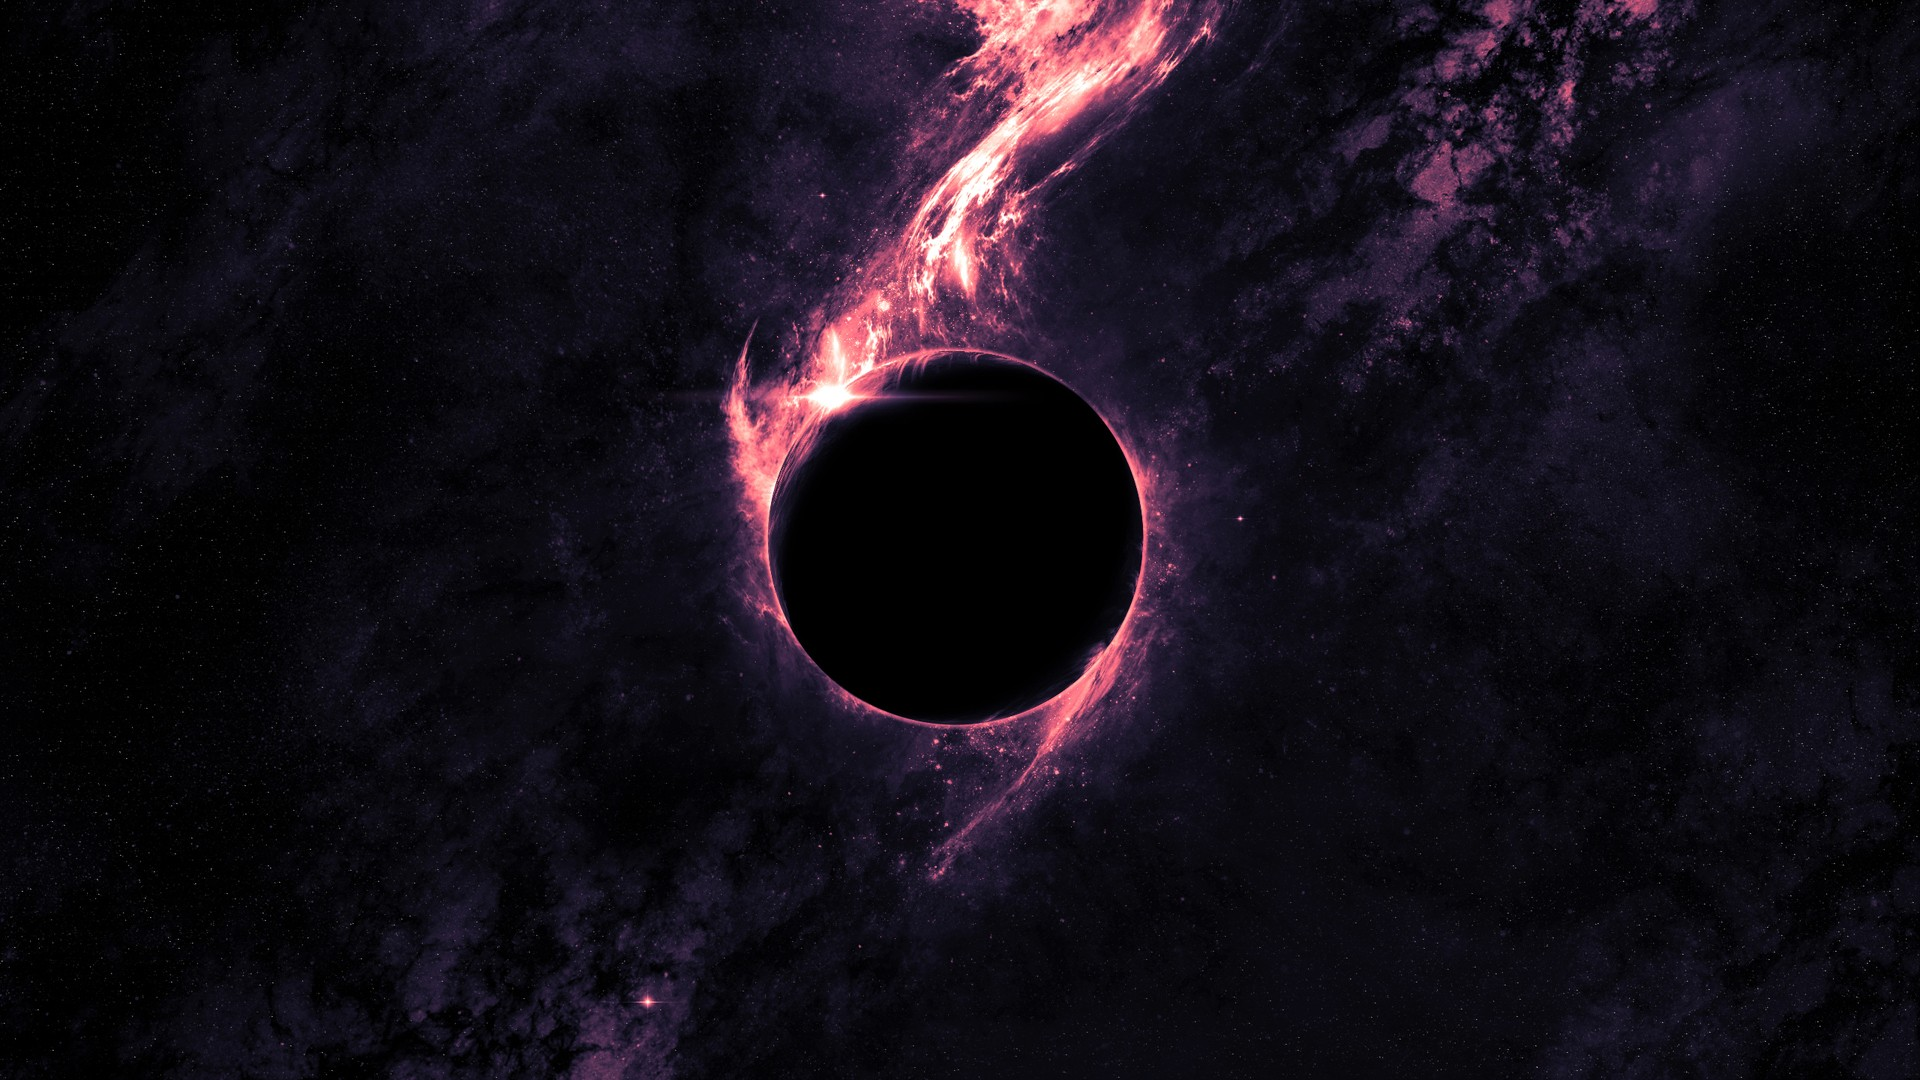 Dark Void HD Wallpapers 38 images   DodoWallpaper 1920x1080